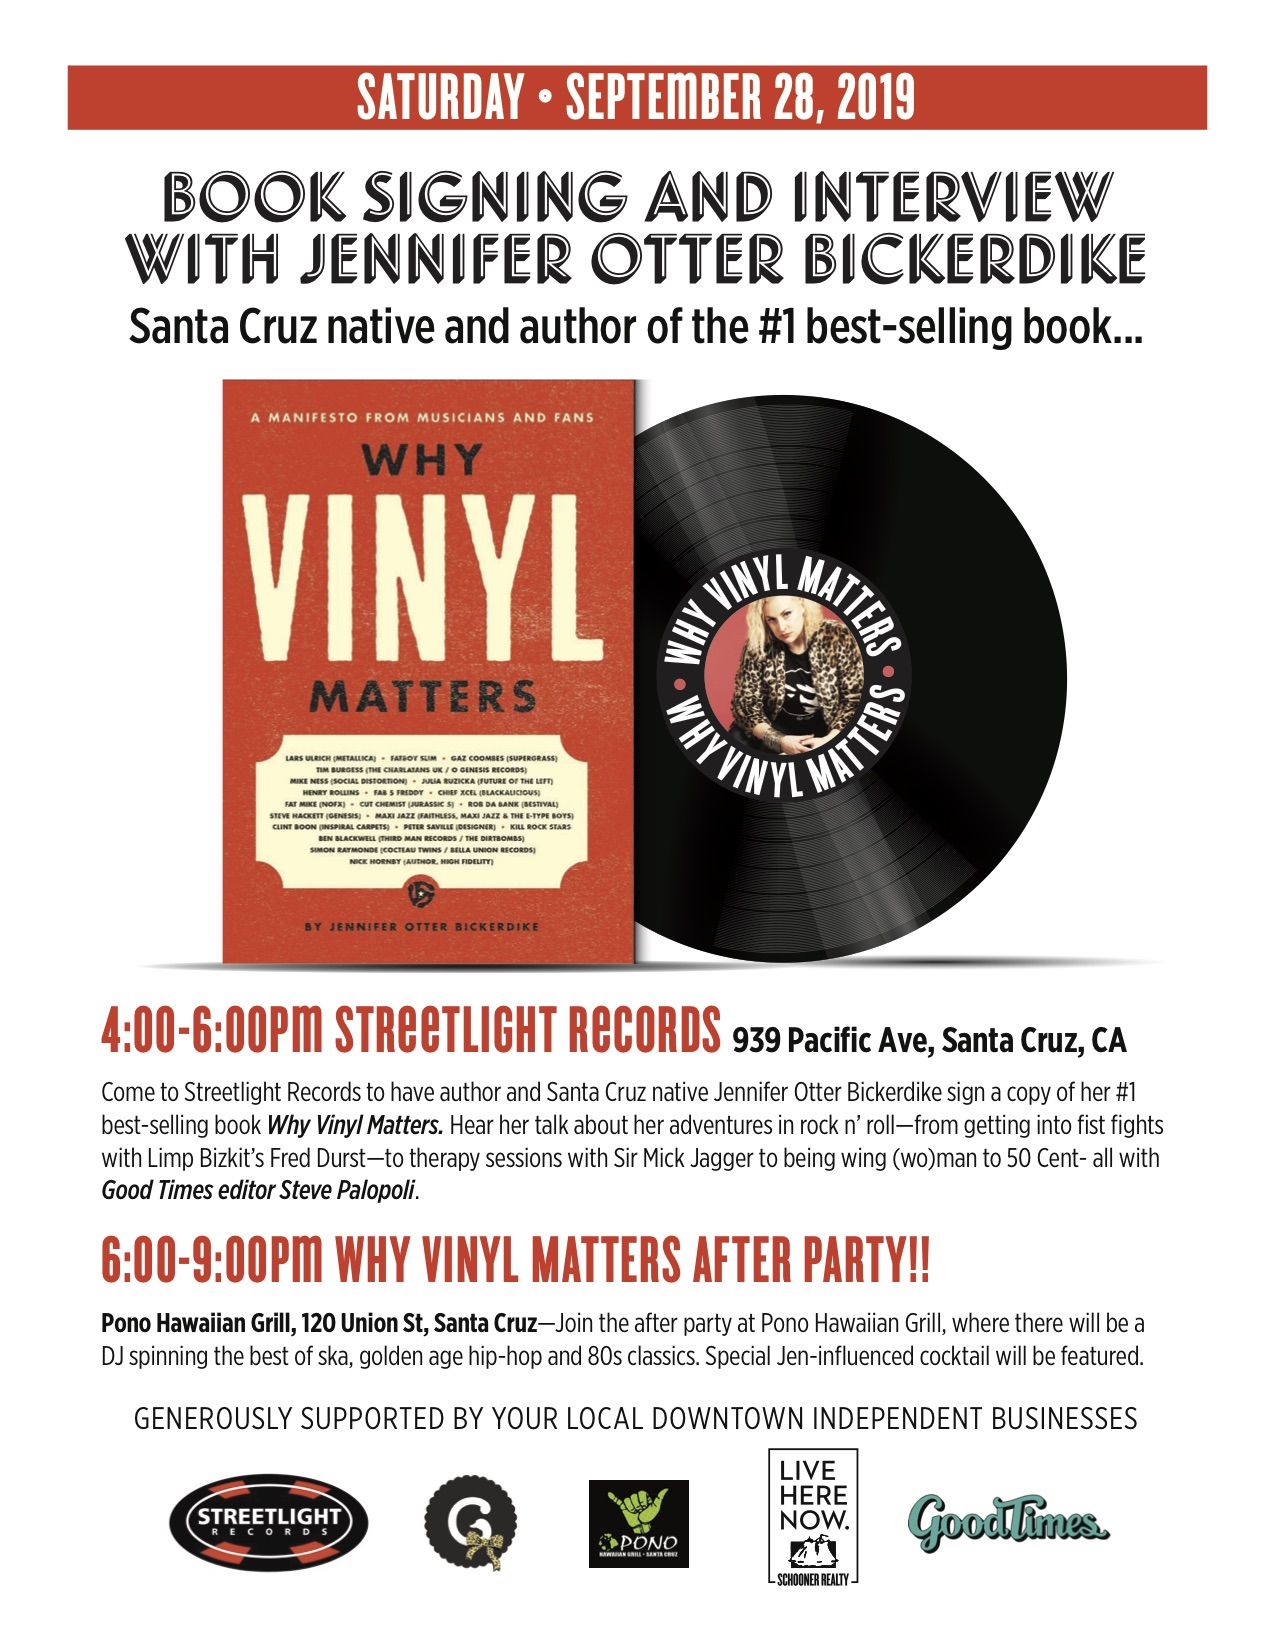 Book Signing and Interview with Jennifer Otter Bickerdike